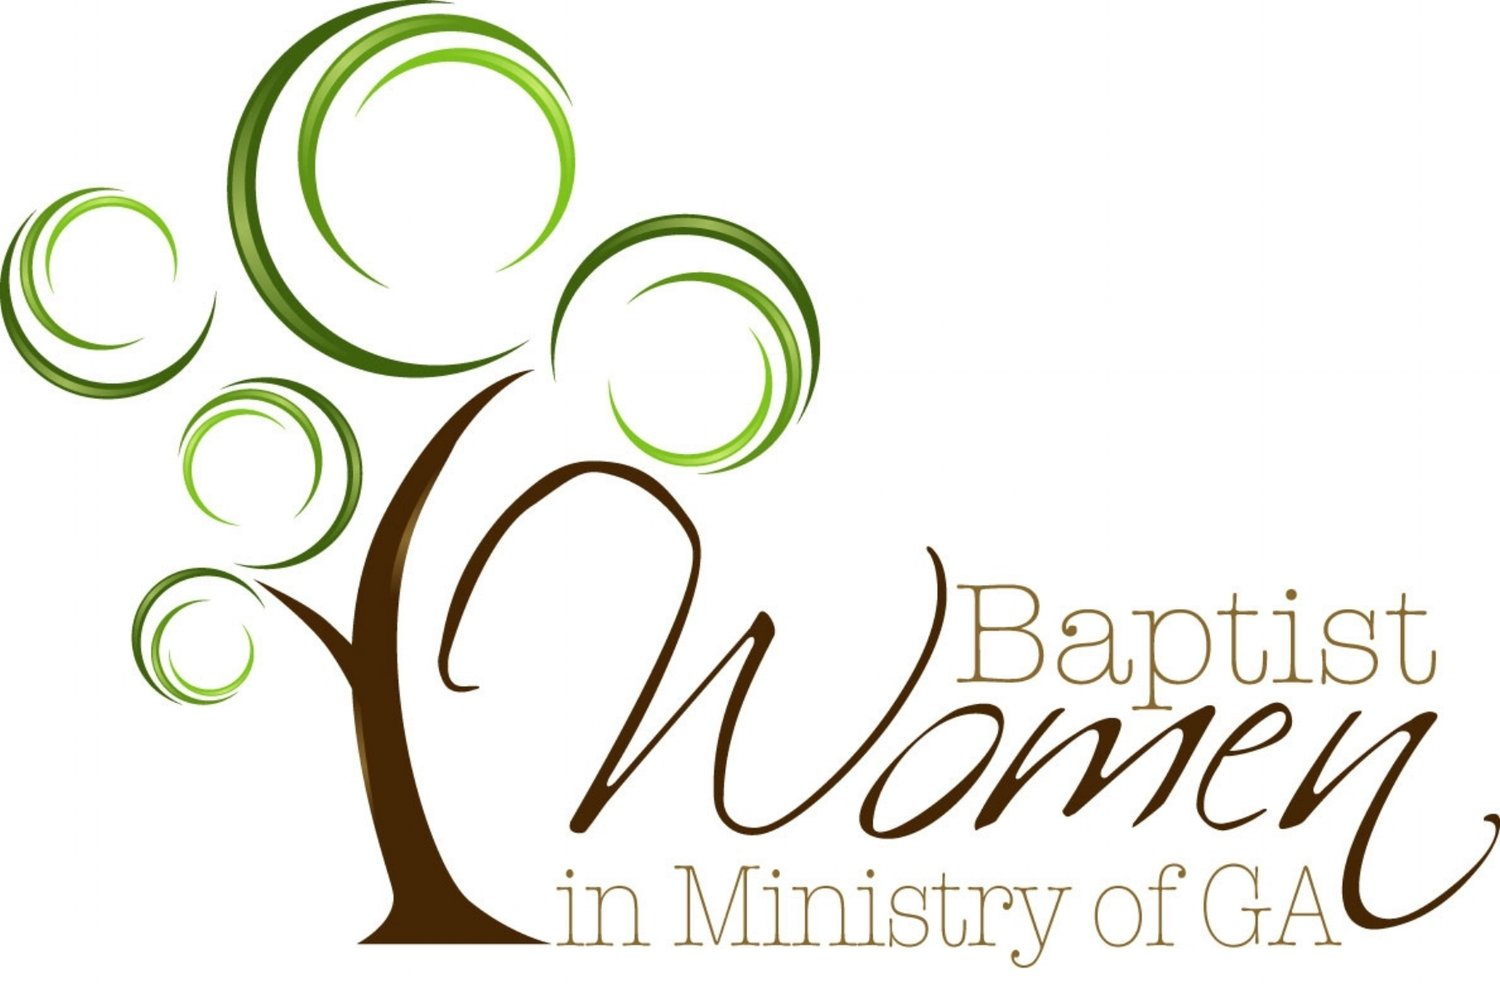 Baptist Women in Ministry of Georgia